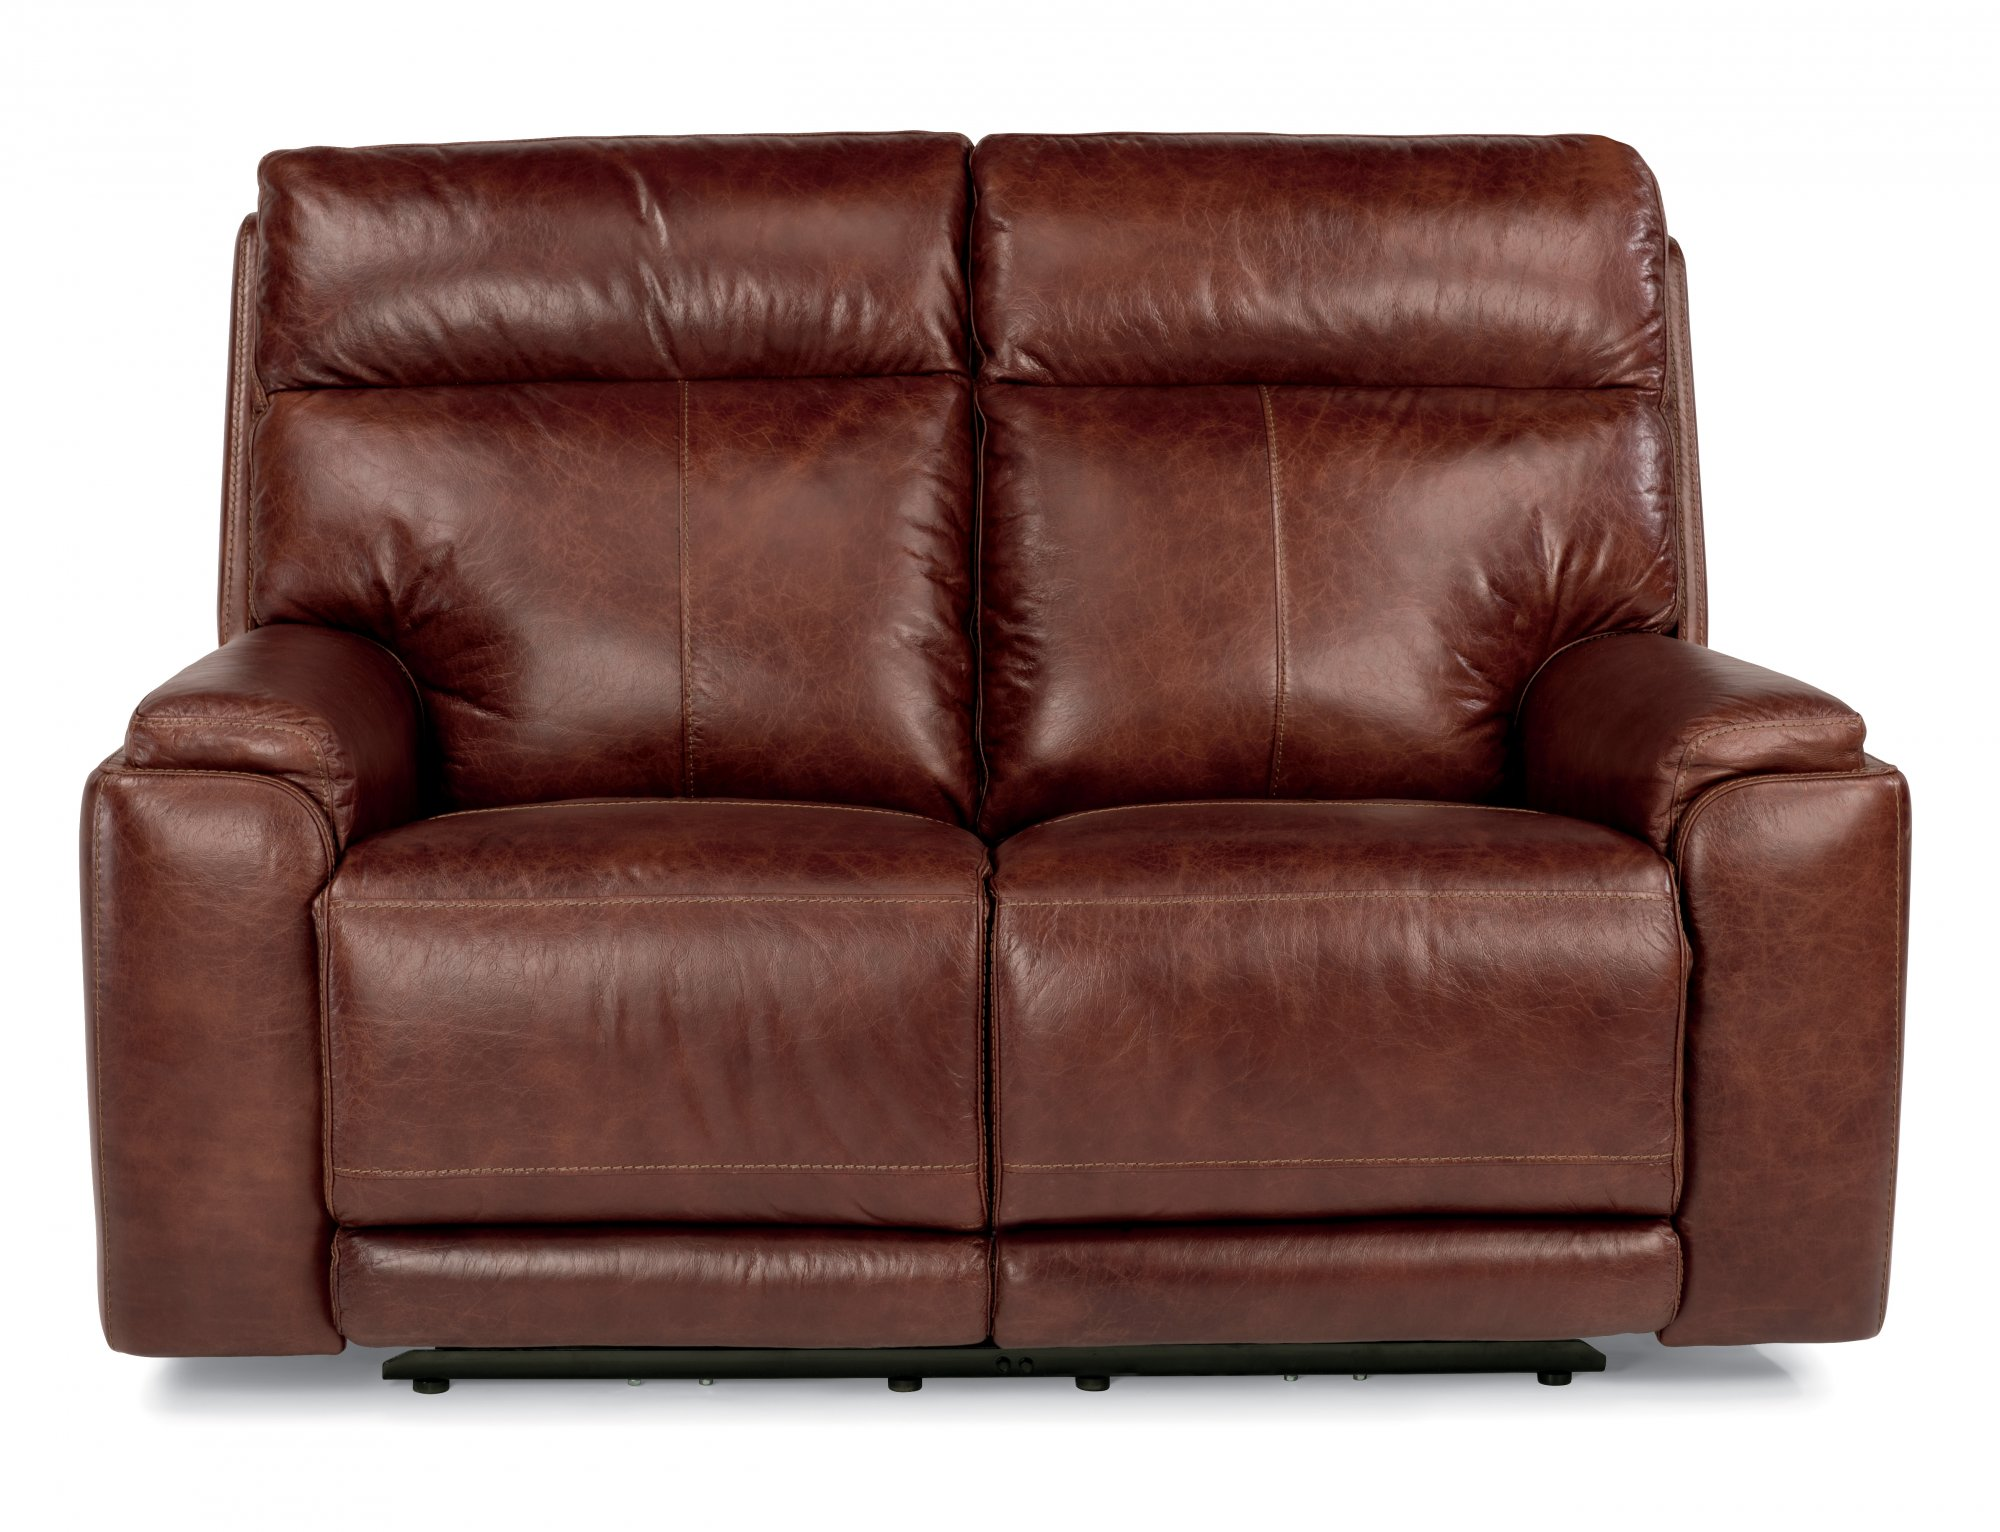 Stunning leather reclining loveseat leather power reclining loveseat with power headrests ukaxlpf